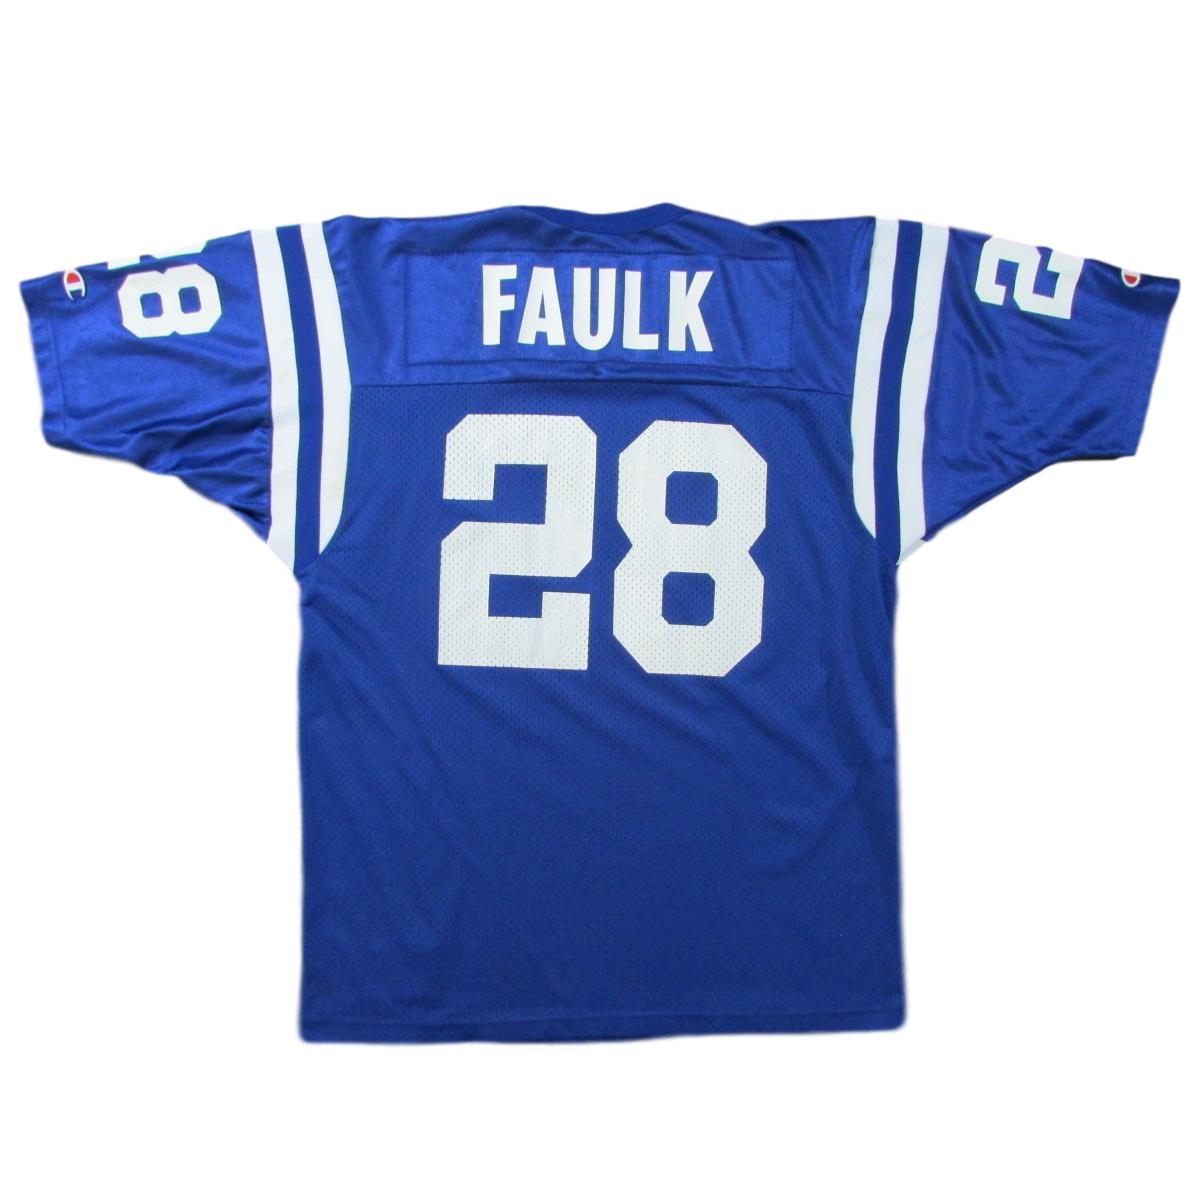 Indianapolis Colts Marshall Faulk Champion Football Jersey Sz 48